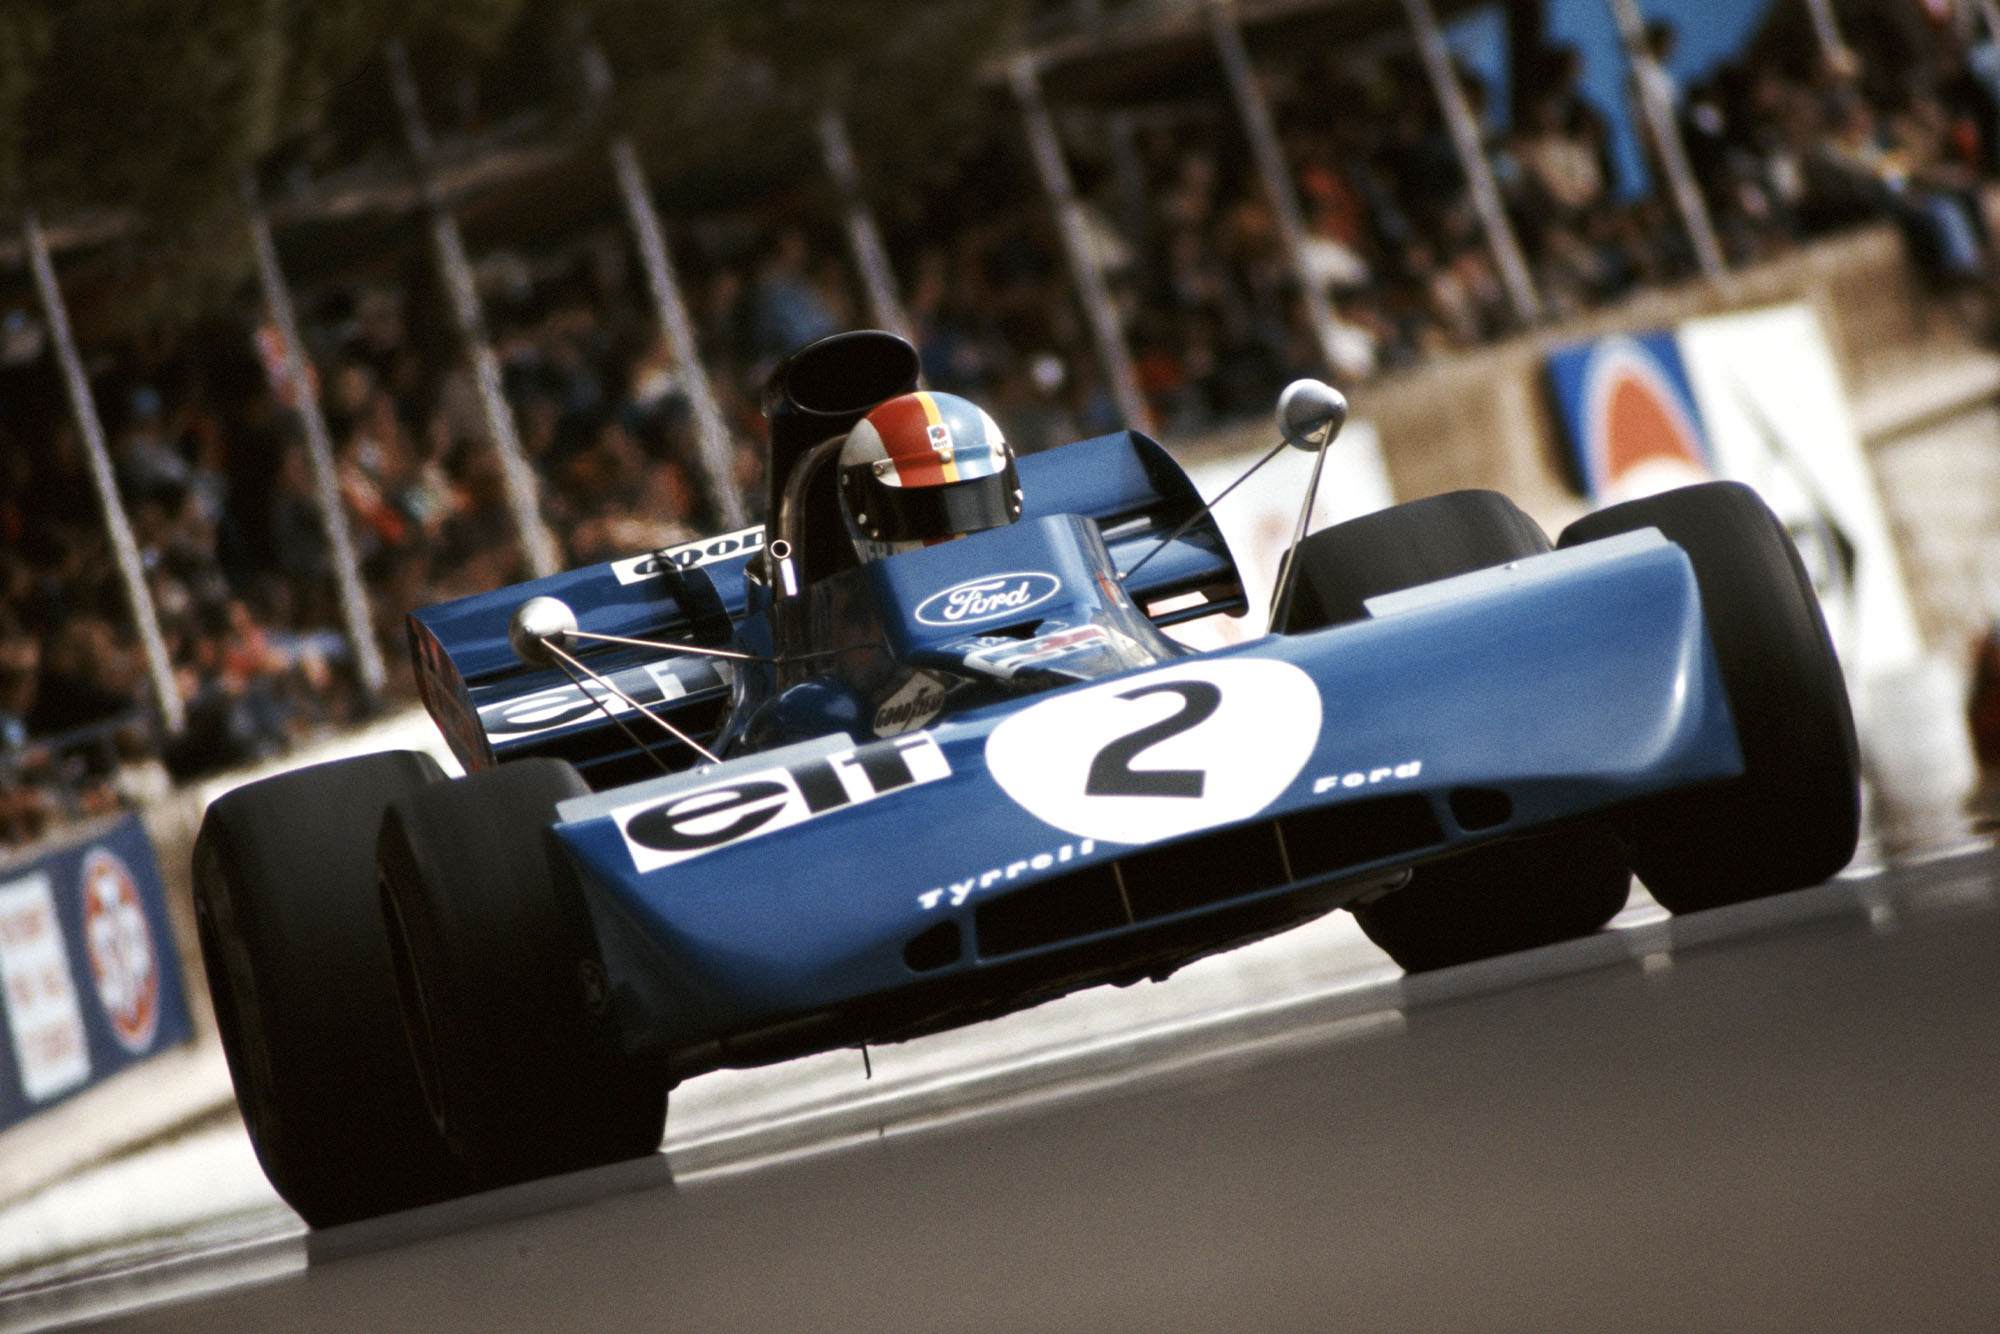 Francois Cevert in his Tyrrell at the 1972 Monaco Grand Prix.